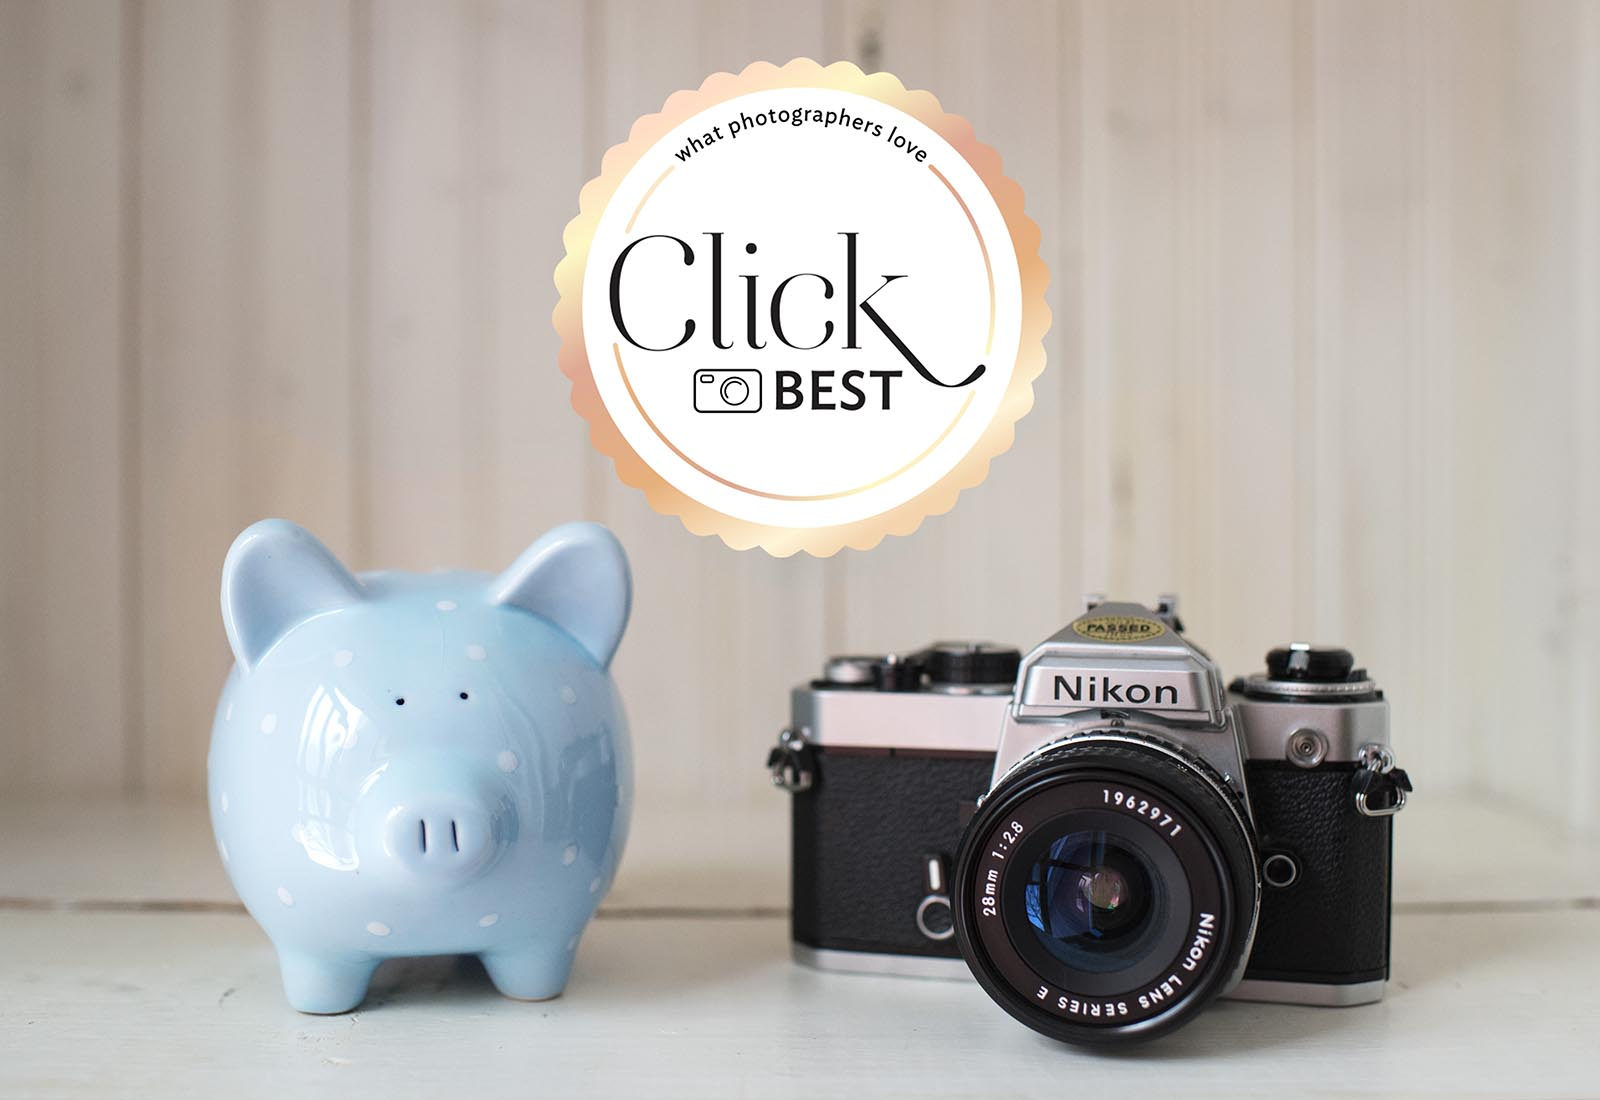 photography bargains for budget-friendly gear